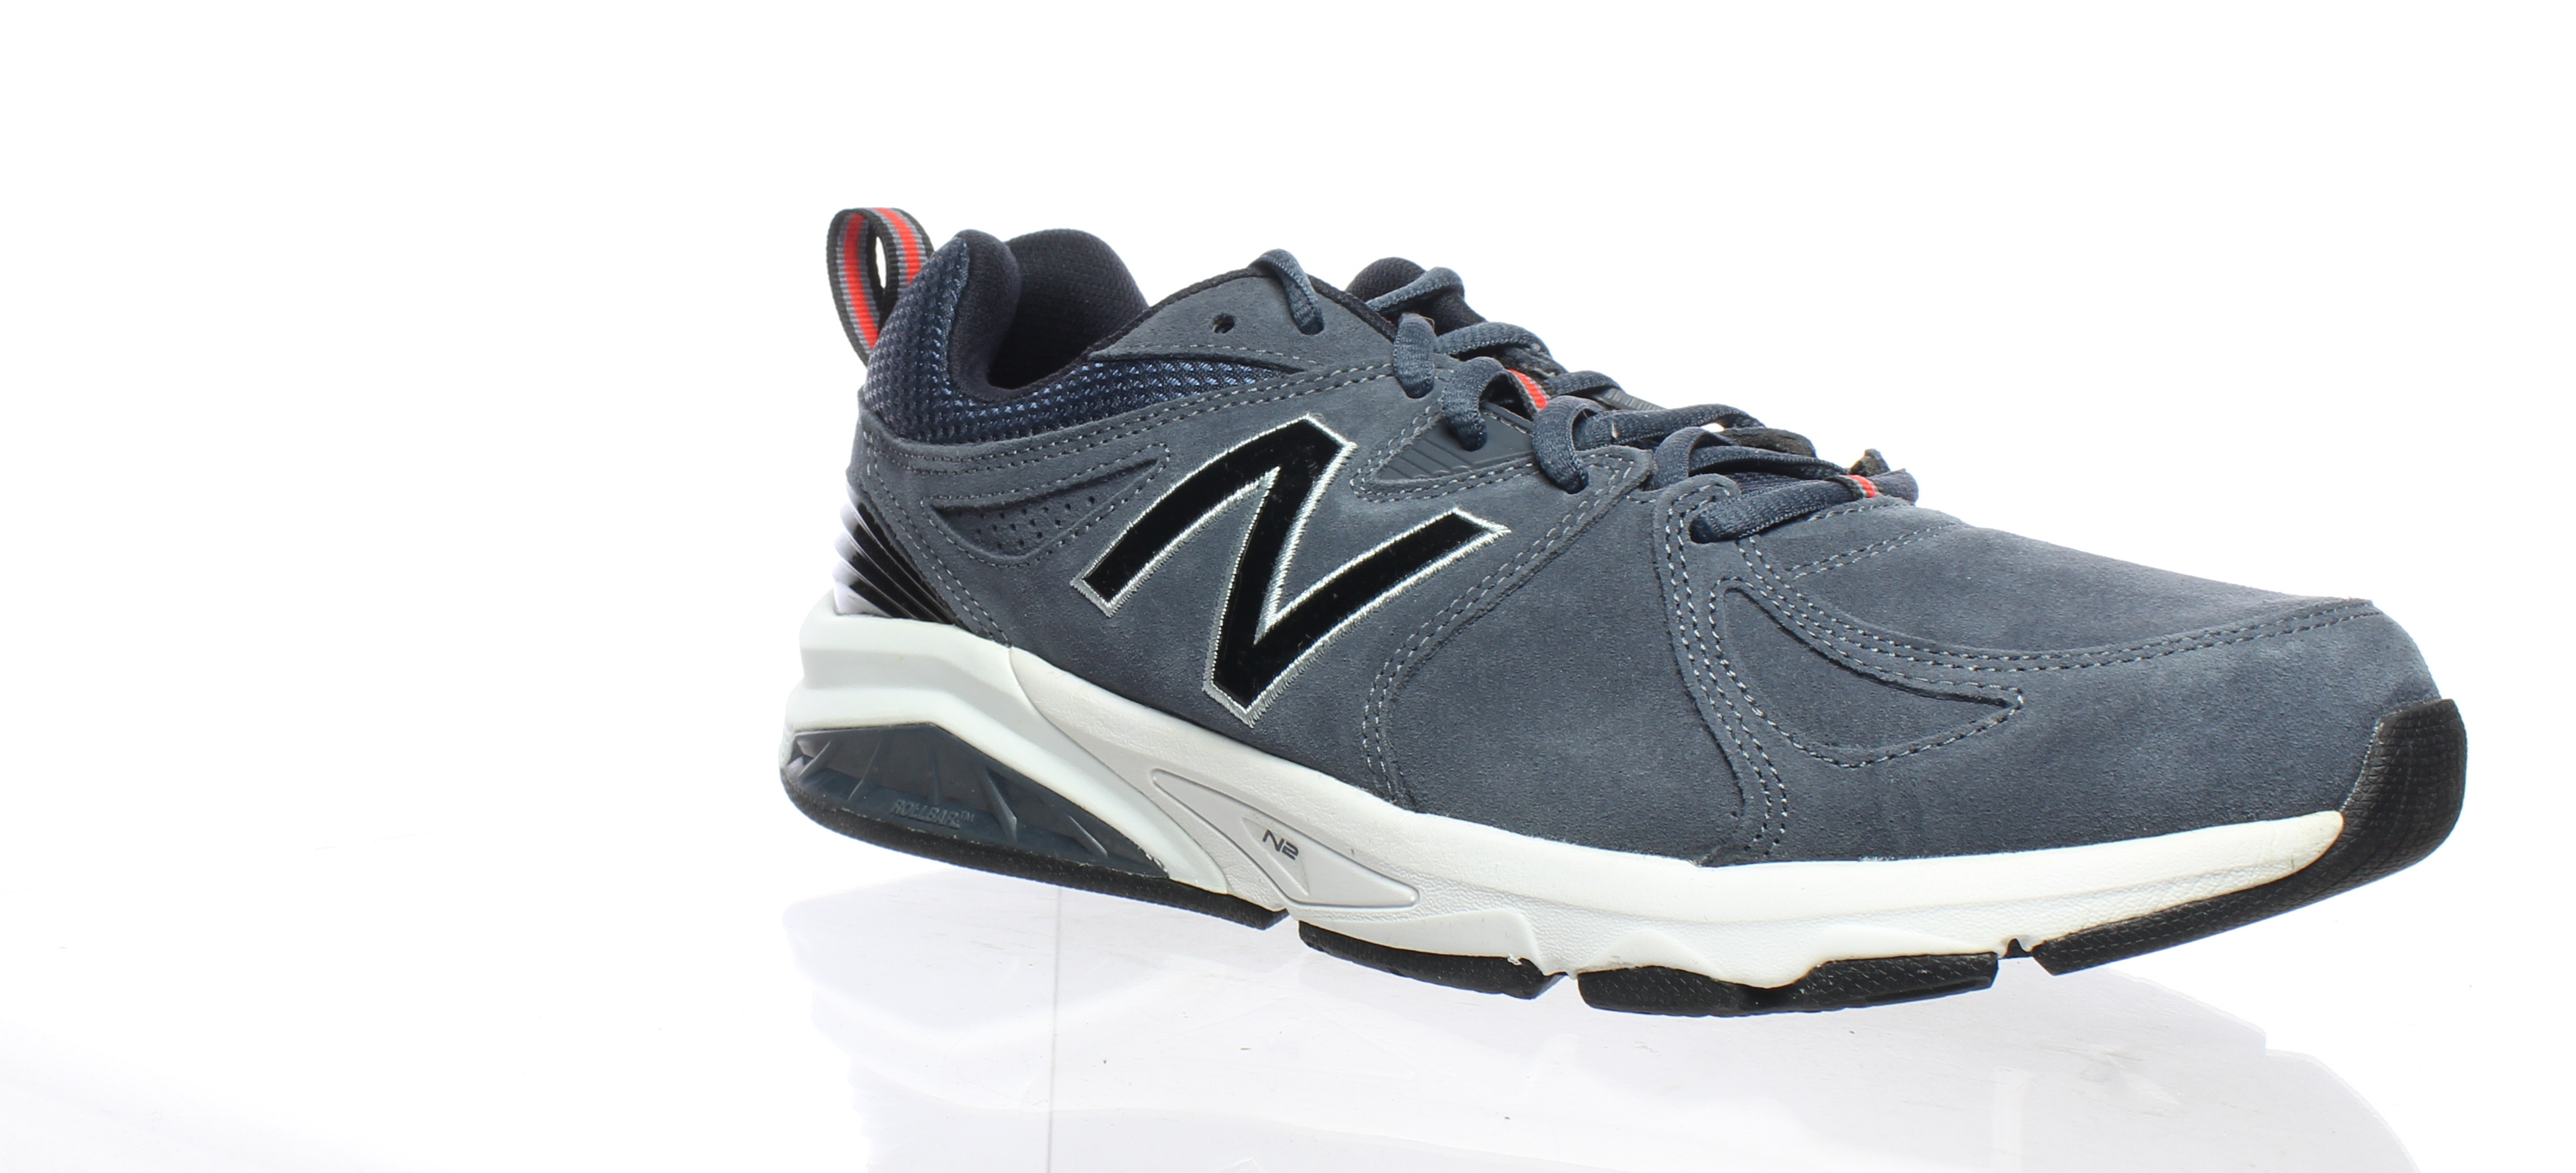 617fdc4715e Details about New Balance Mens Mx857ch2 Charcoal Cross Training Shoes Size  10 (172185)